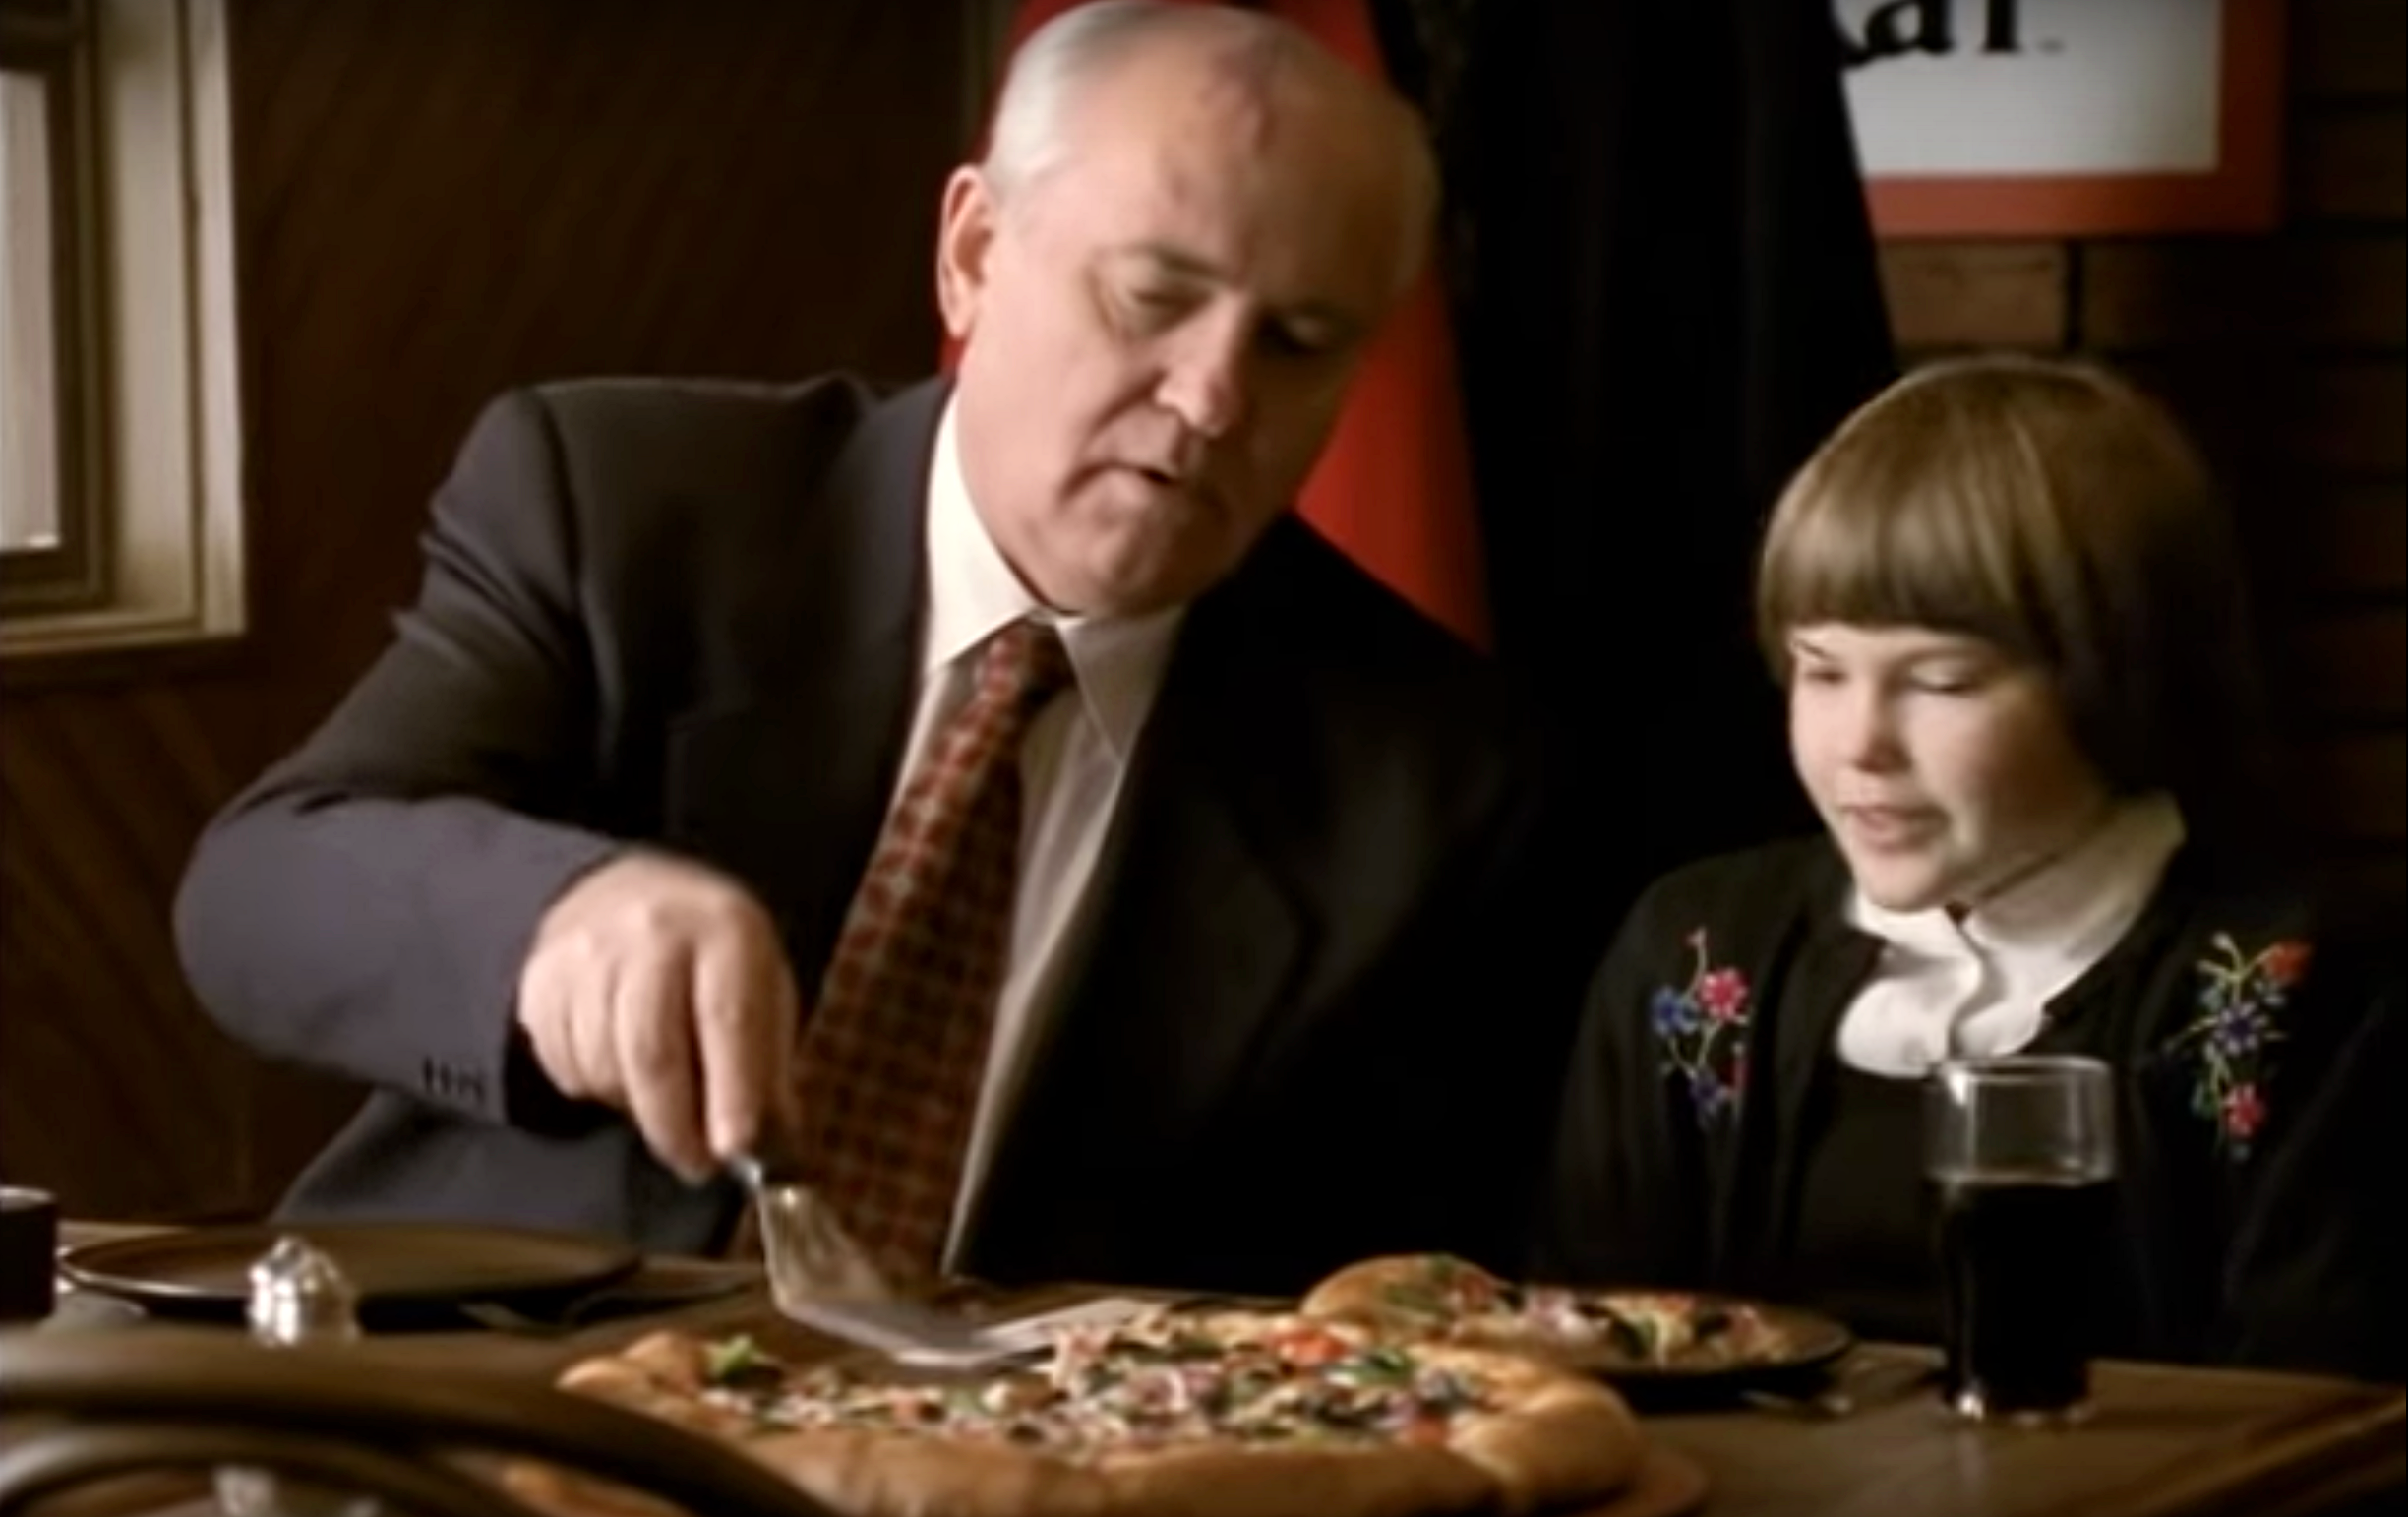 An older man and a 10-year-old girl seated at a table, a pizza in front of them.